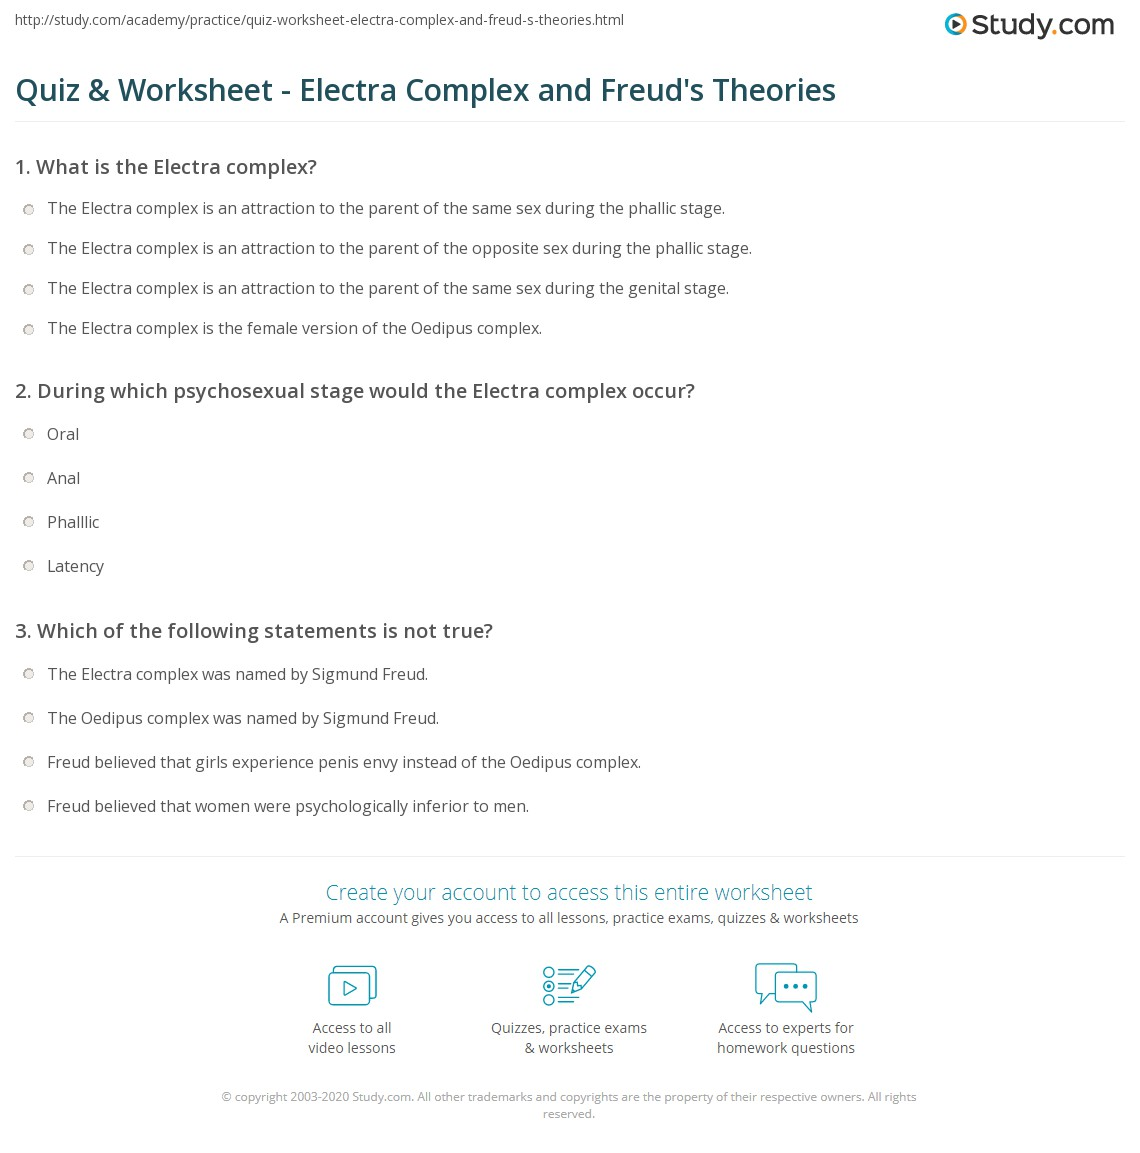 Freuds theory of psychosexual development quiz